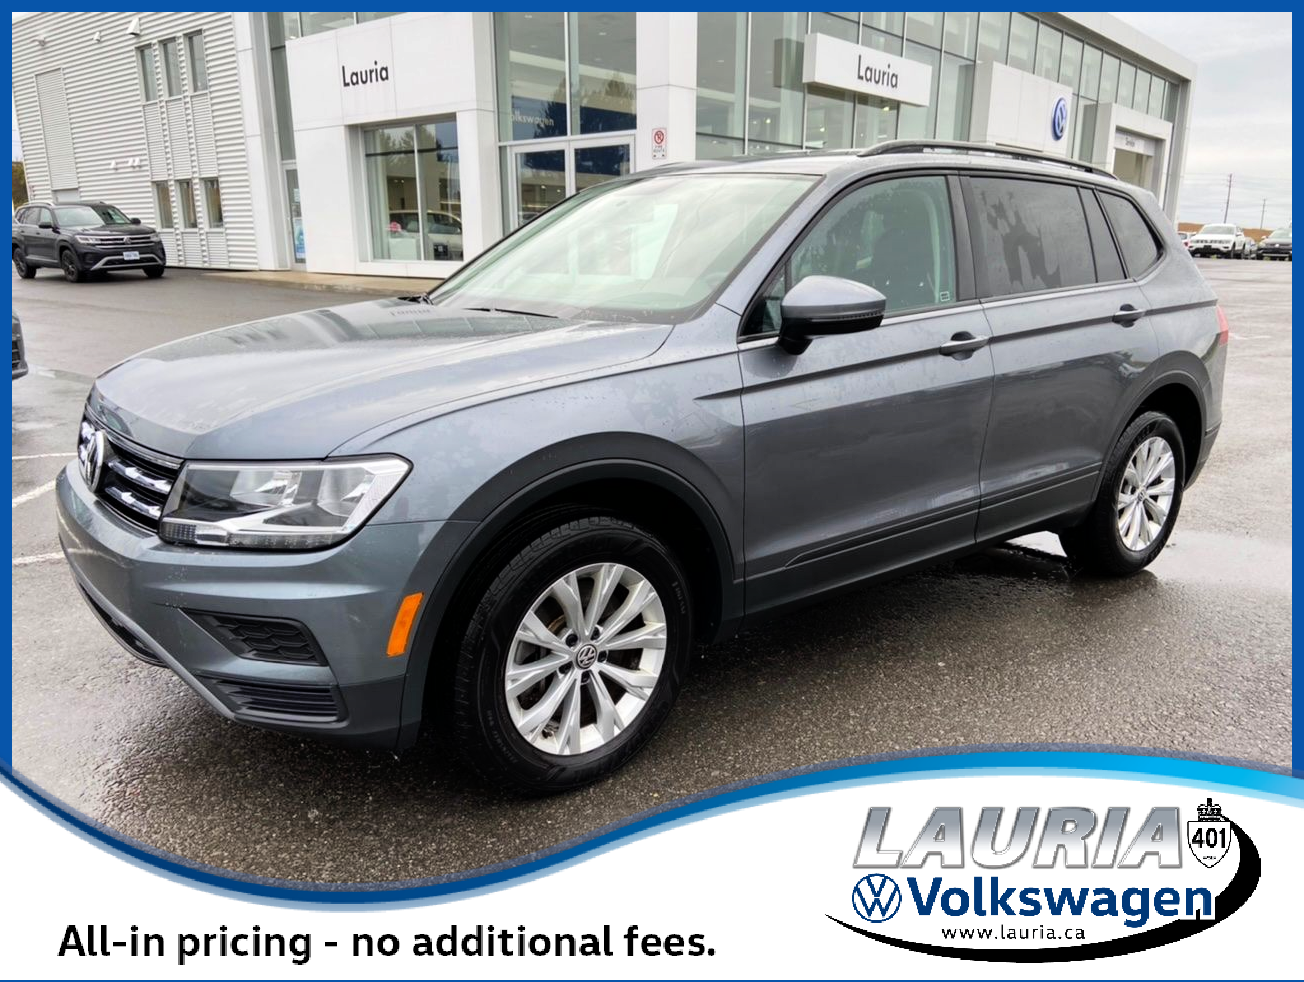 Certified Pre-Owned 2019 Volkswagen Tiguan 2.0T Trendline 4Motion AWD - LOW KMS